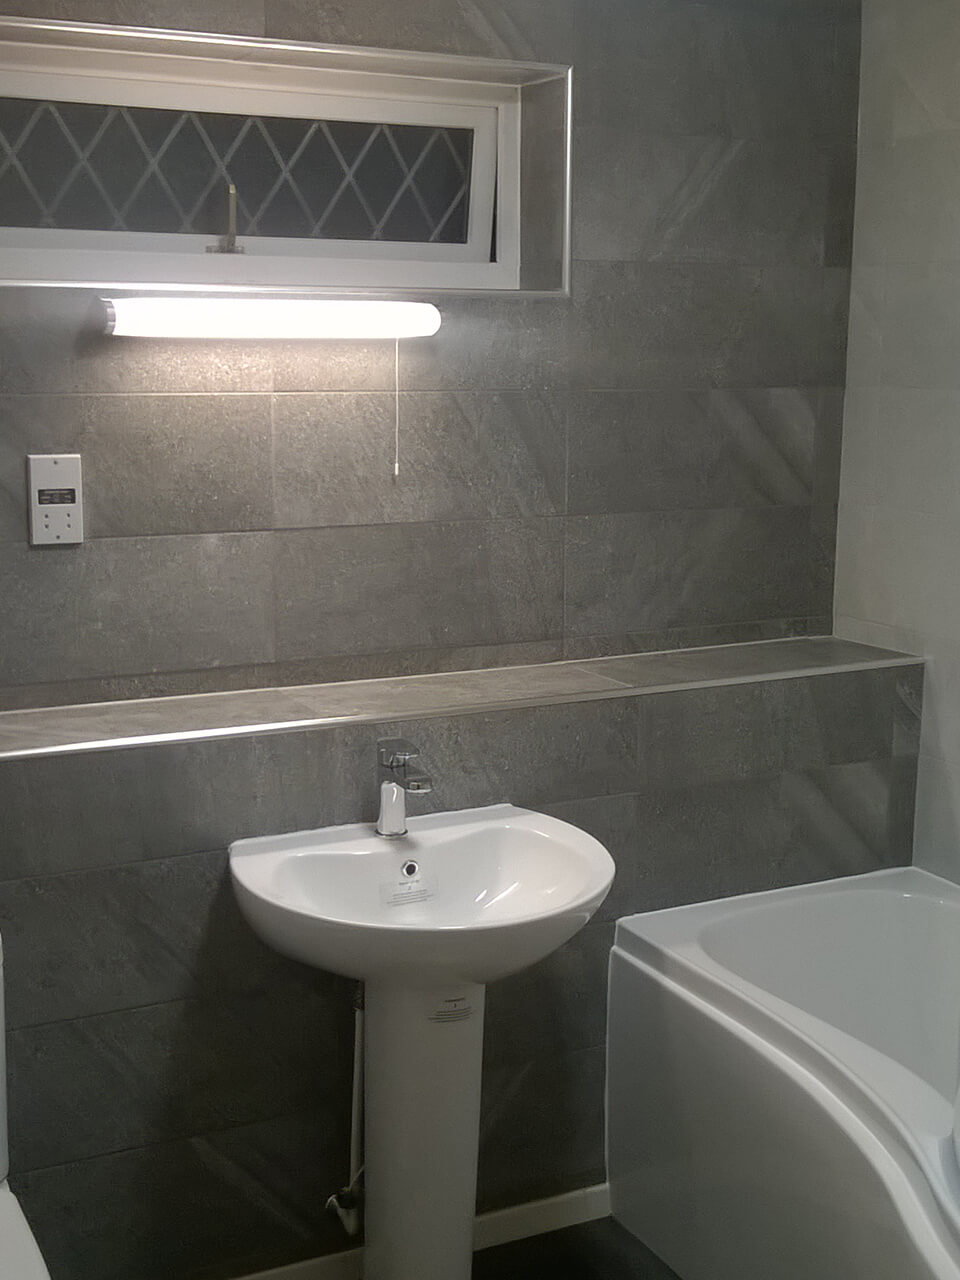 ashmore_plumbing_building_blackpool_bathroom_installation_21